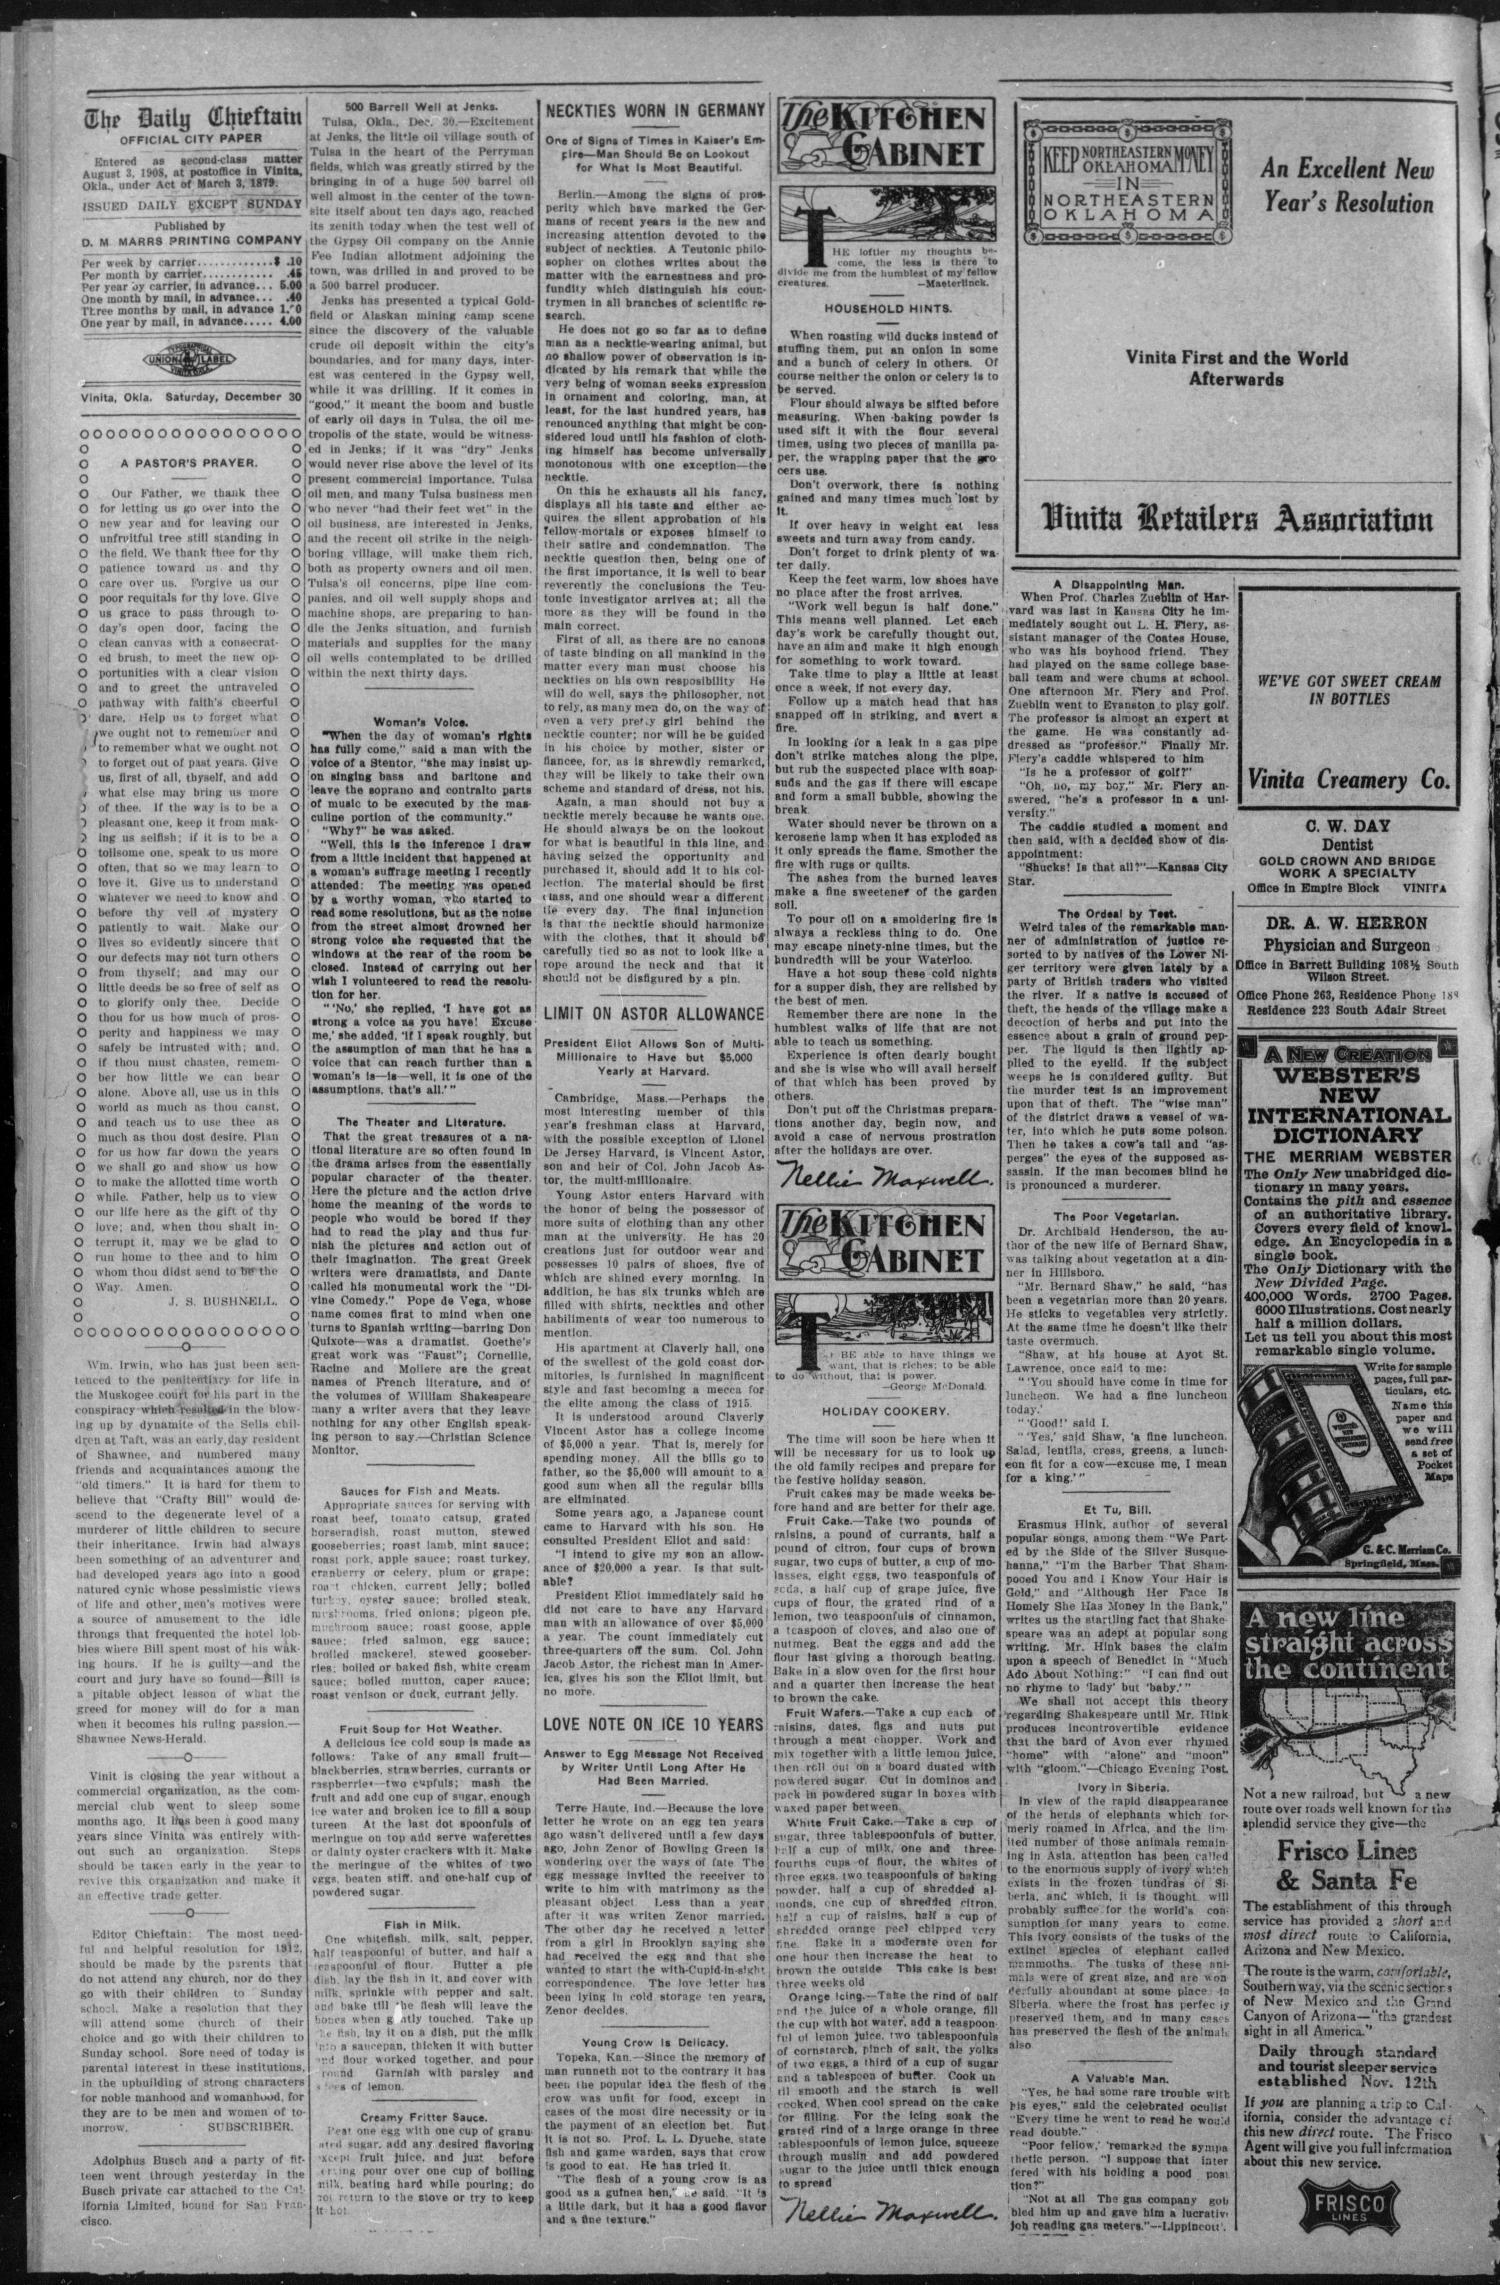 Vinita Daily Chieftain. (Vinita, Okla.), Vol. 13, No. 212, Ed. 1 Saturday, December 30, 1911                                                                                                      [Sequence #]: 2 of 4